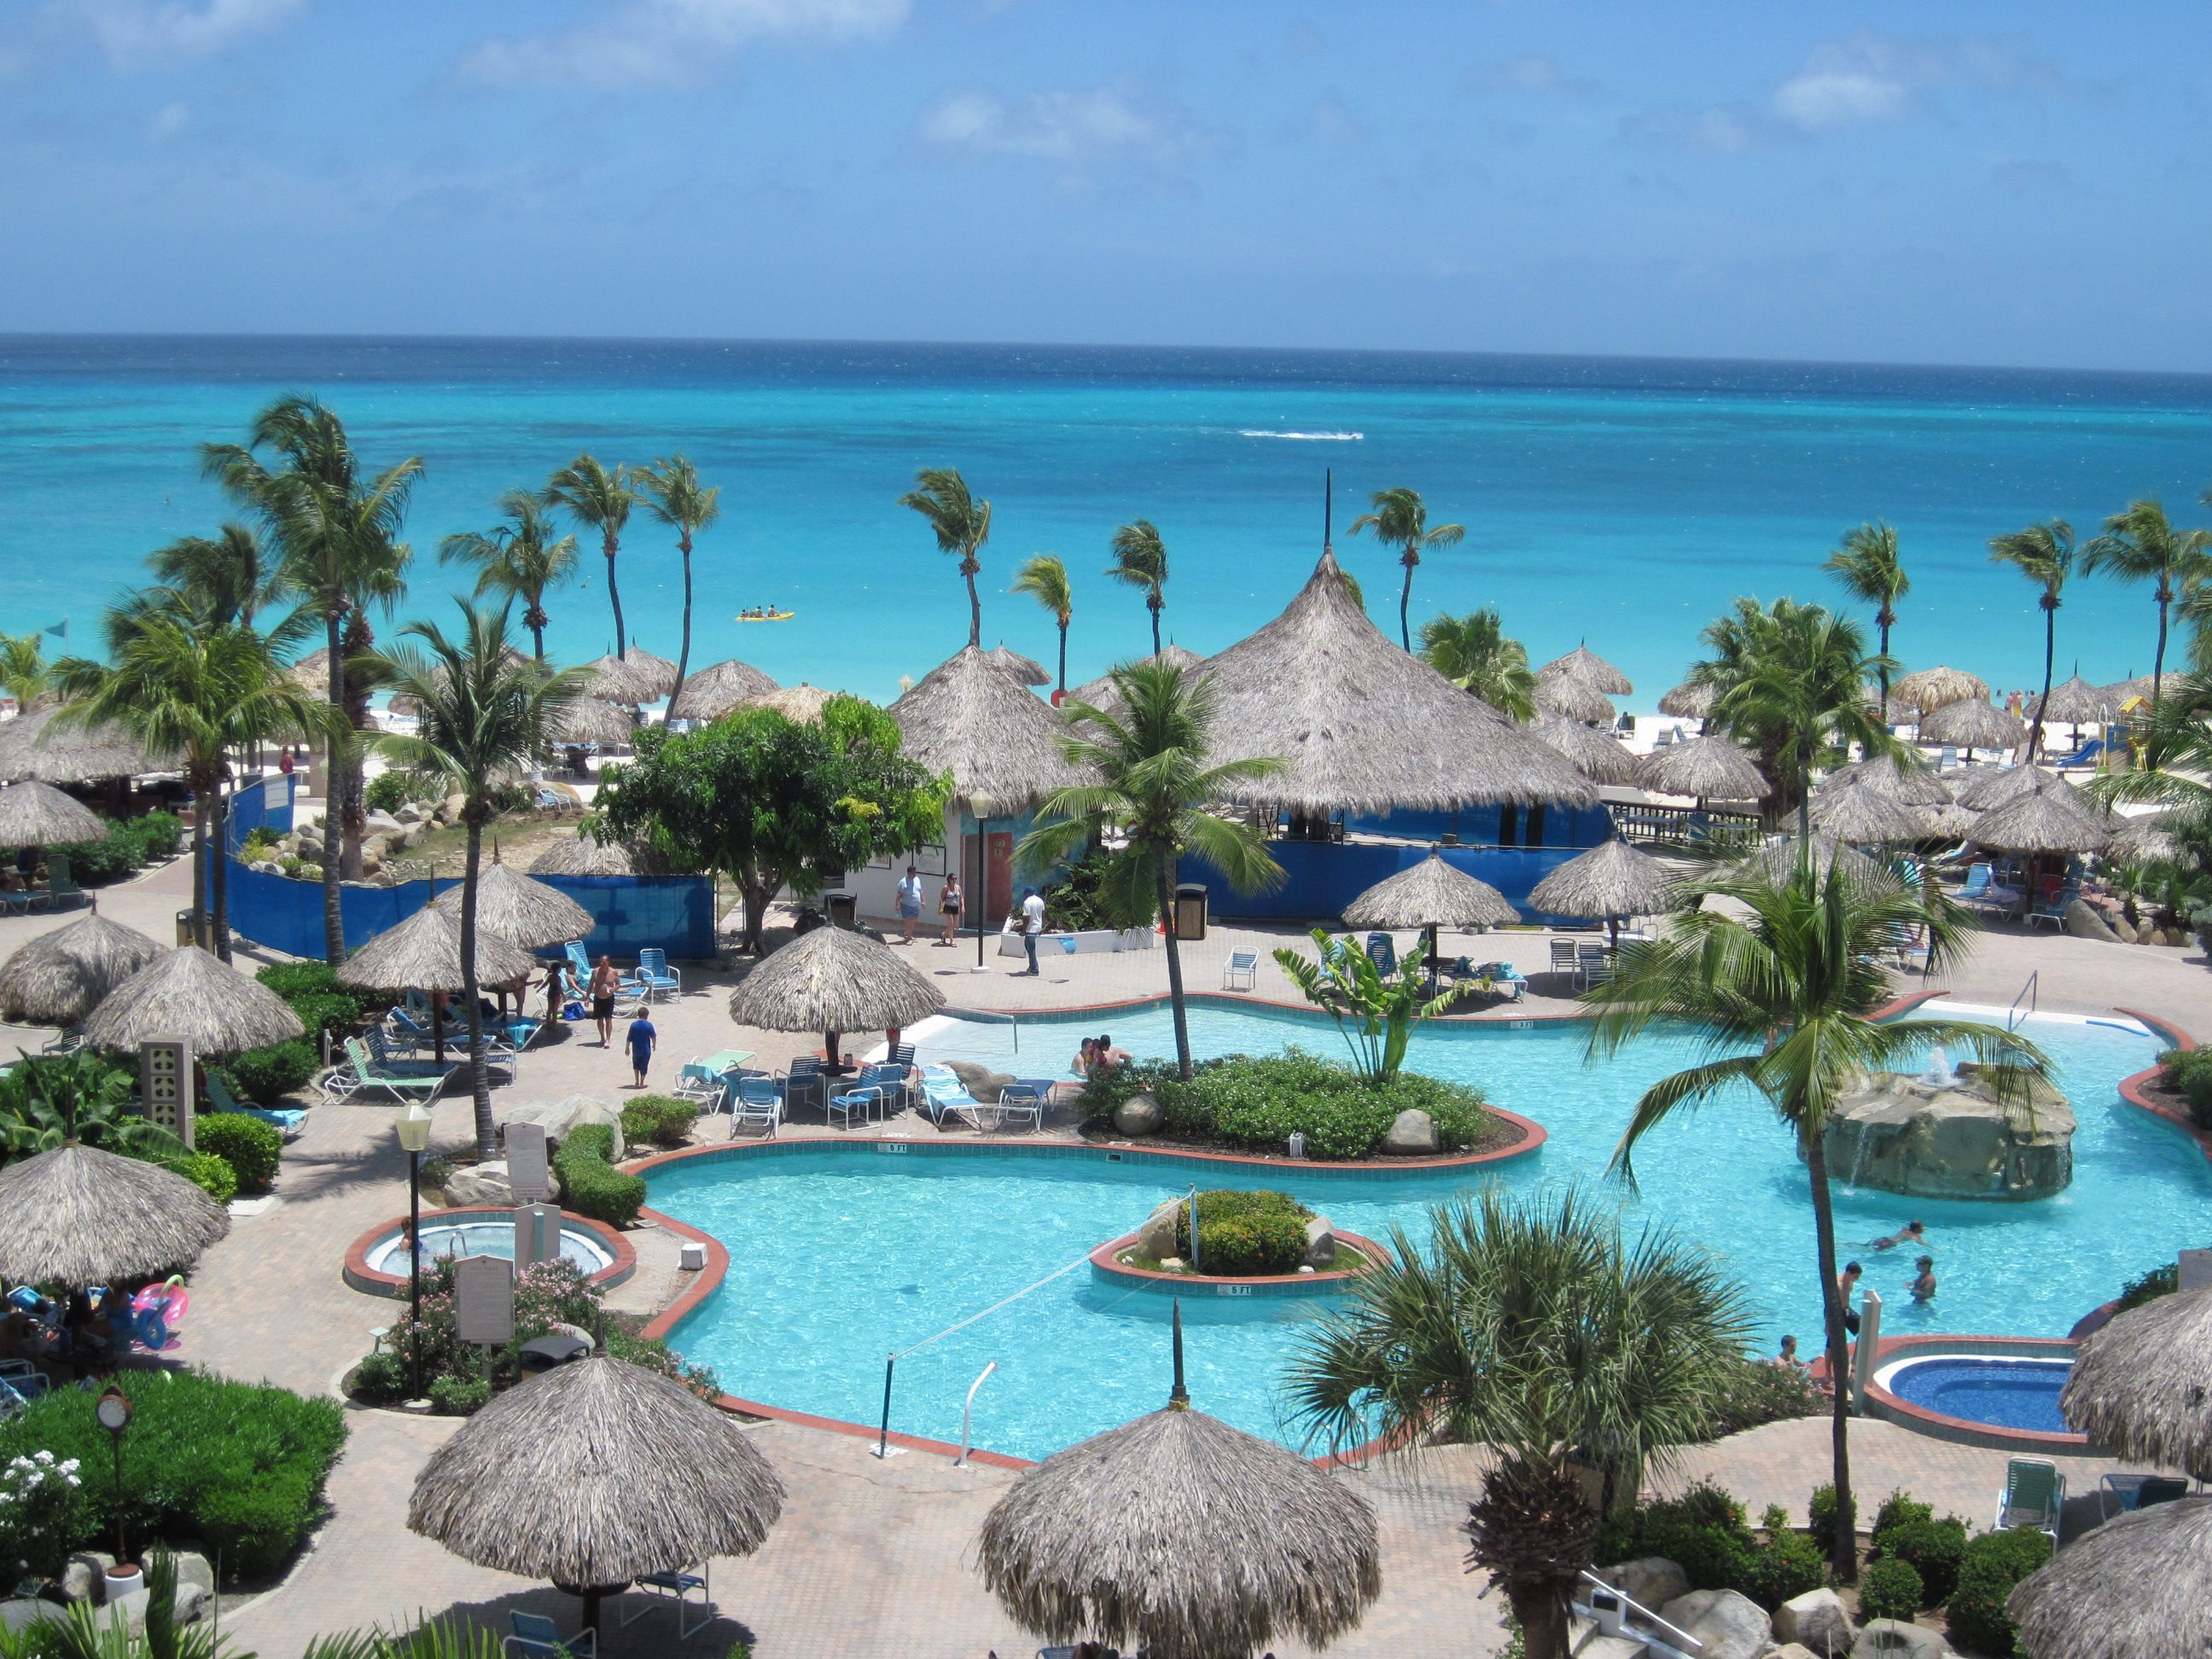 Costa Linda Aruba  Aruba resorts Aruba vacations